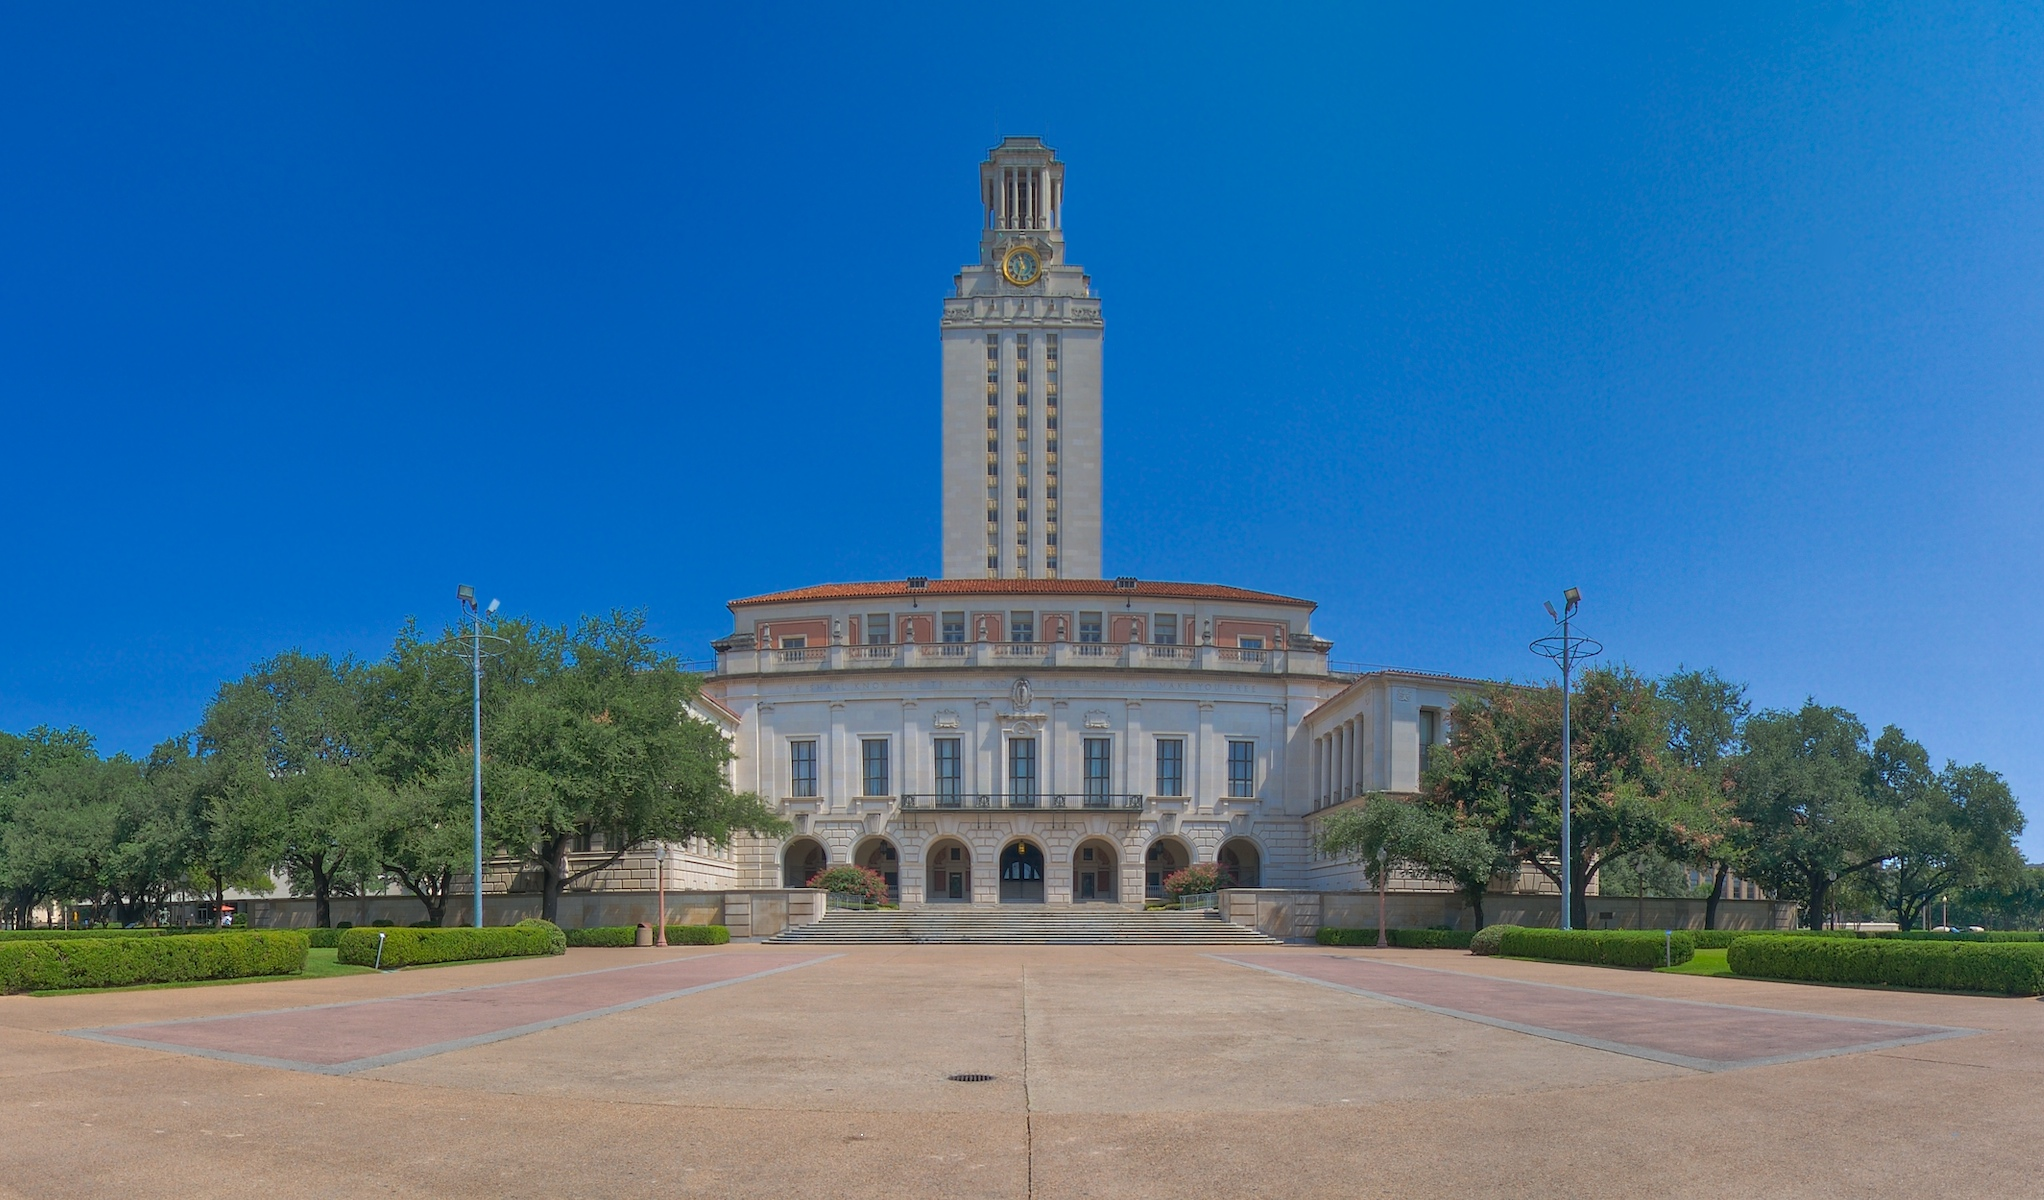 University of texas at austin tower from south mall 793 71 kb